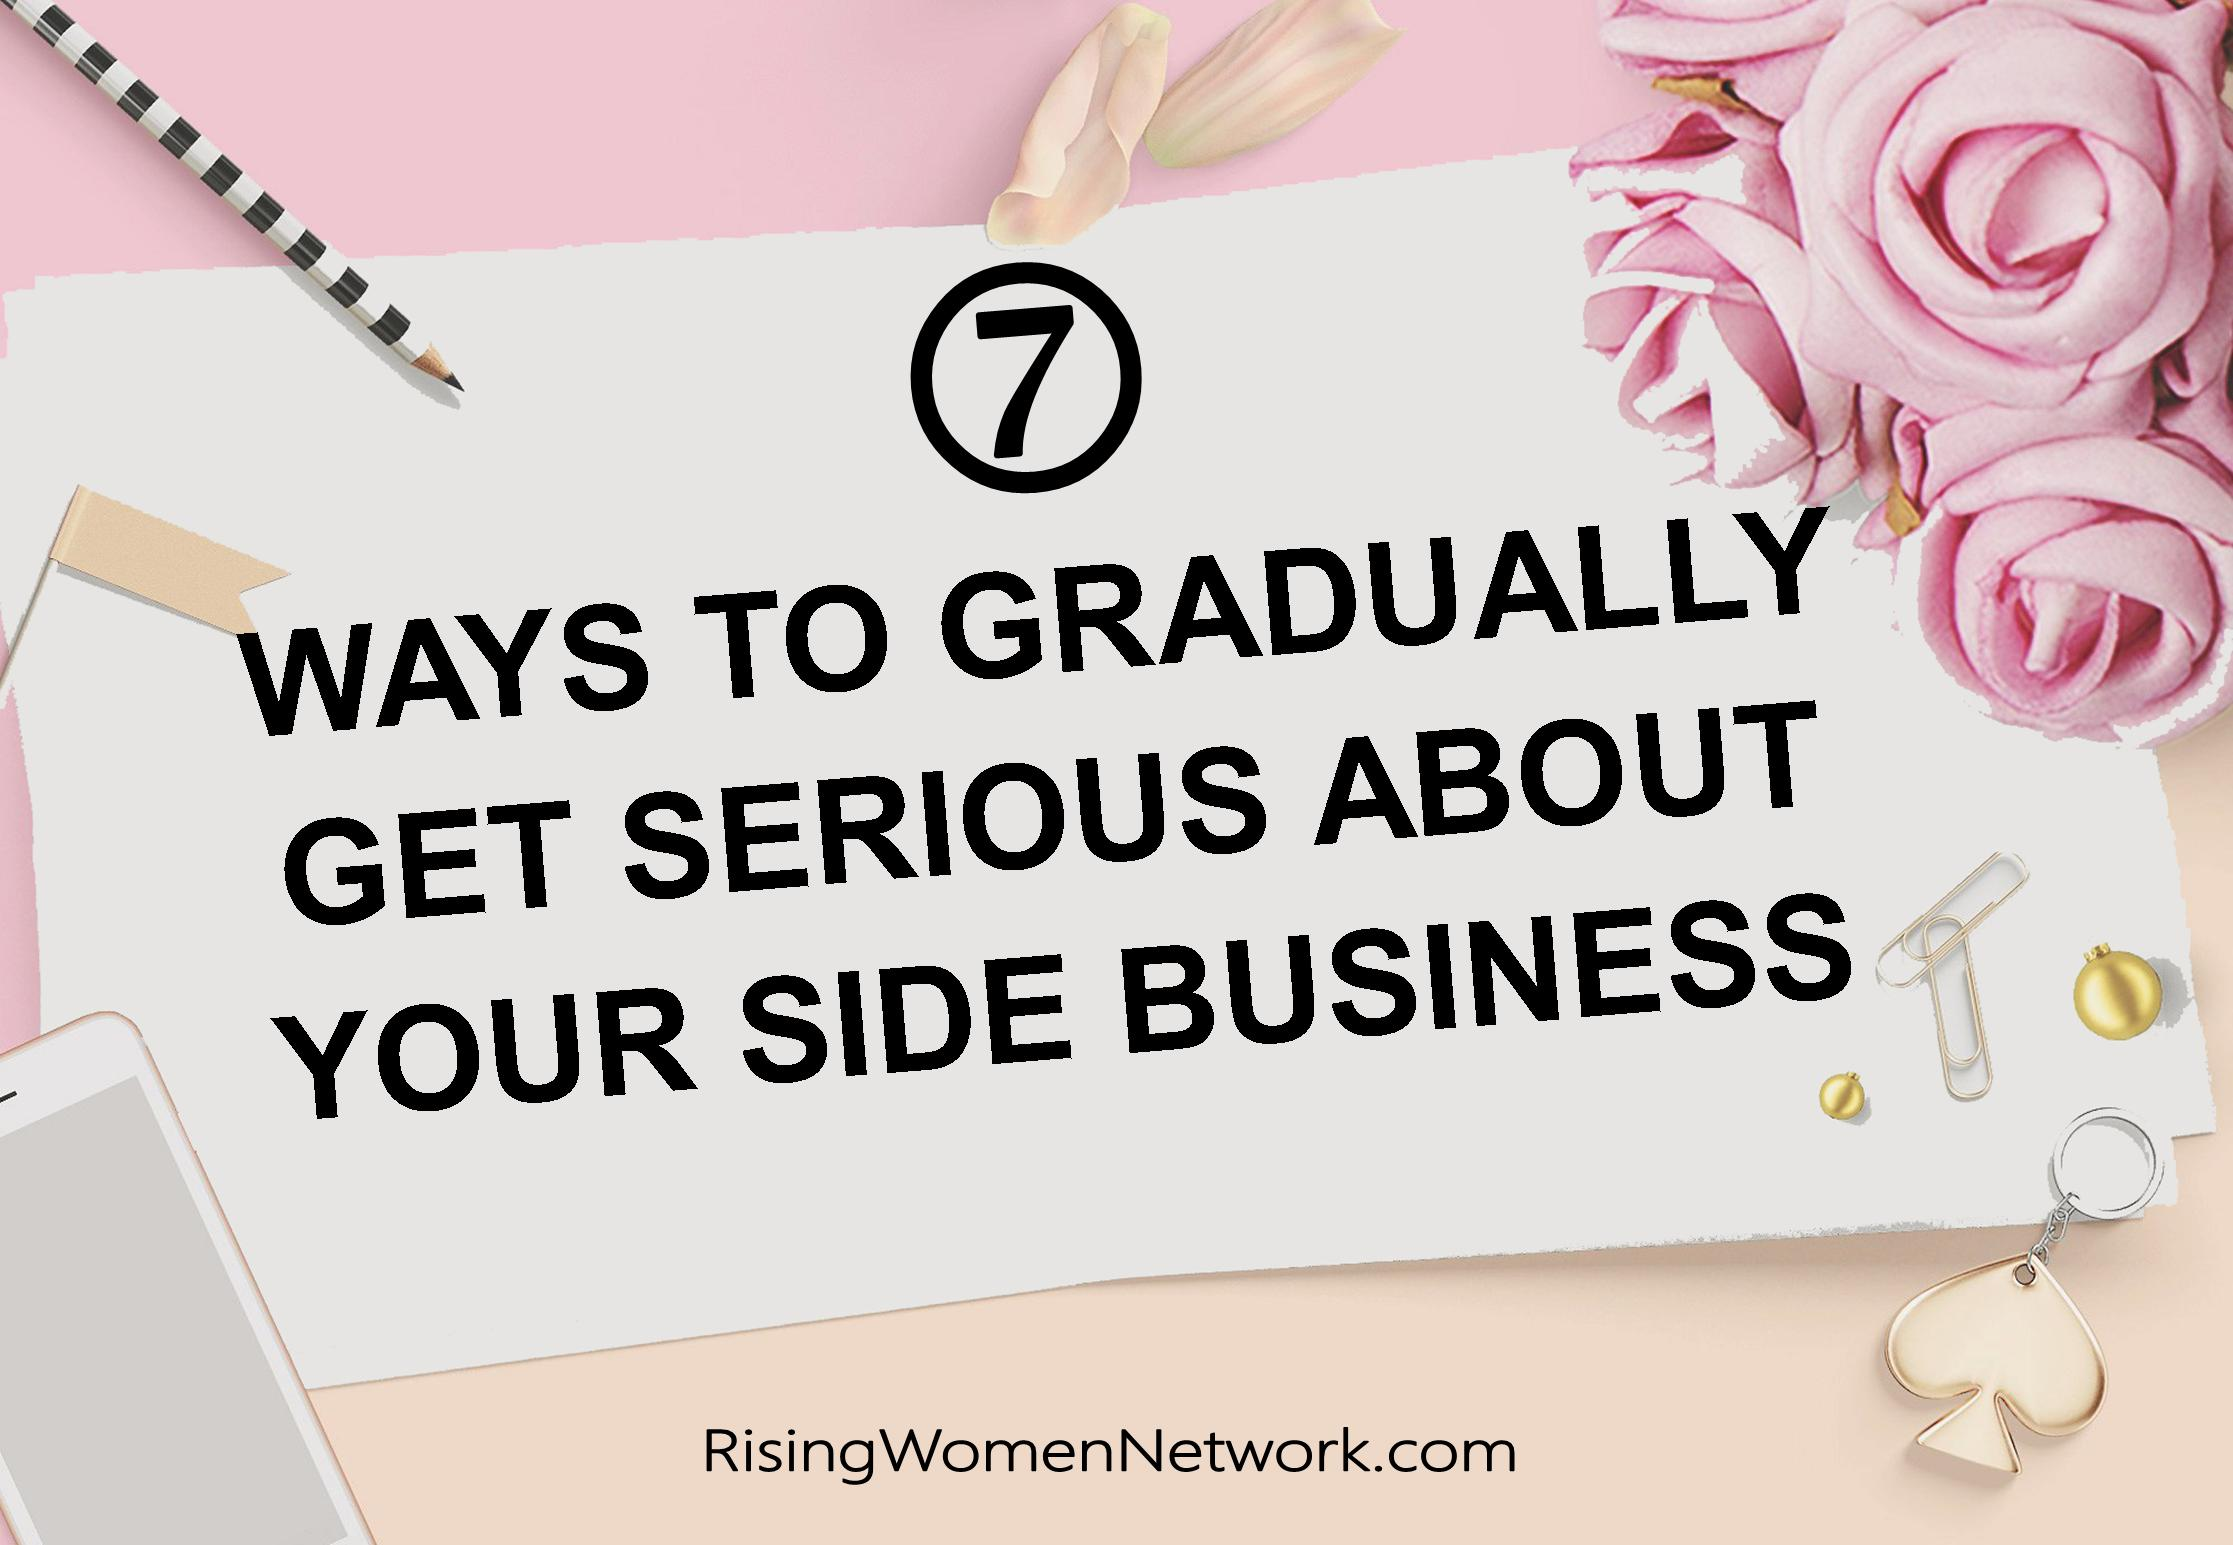 7 Ways To Gradually Get Serious About Your Side Business